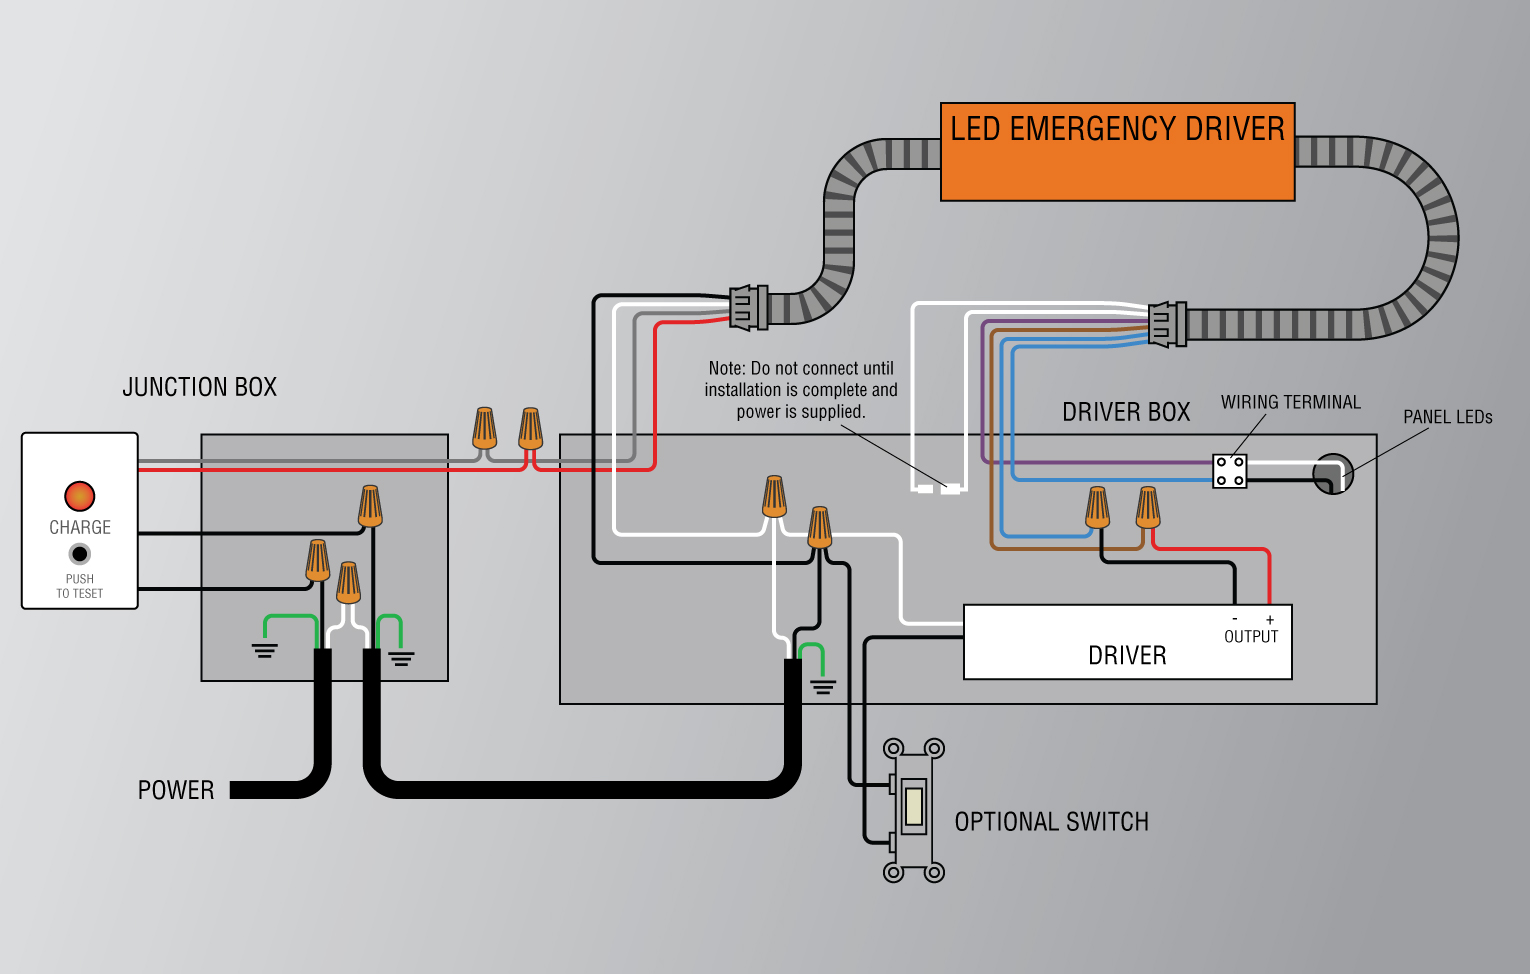 (View enlarged version of typical EL-2548-XXU wiring diagram)